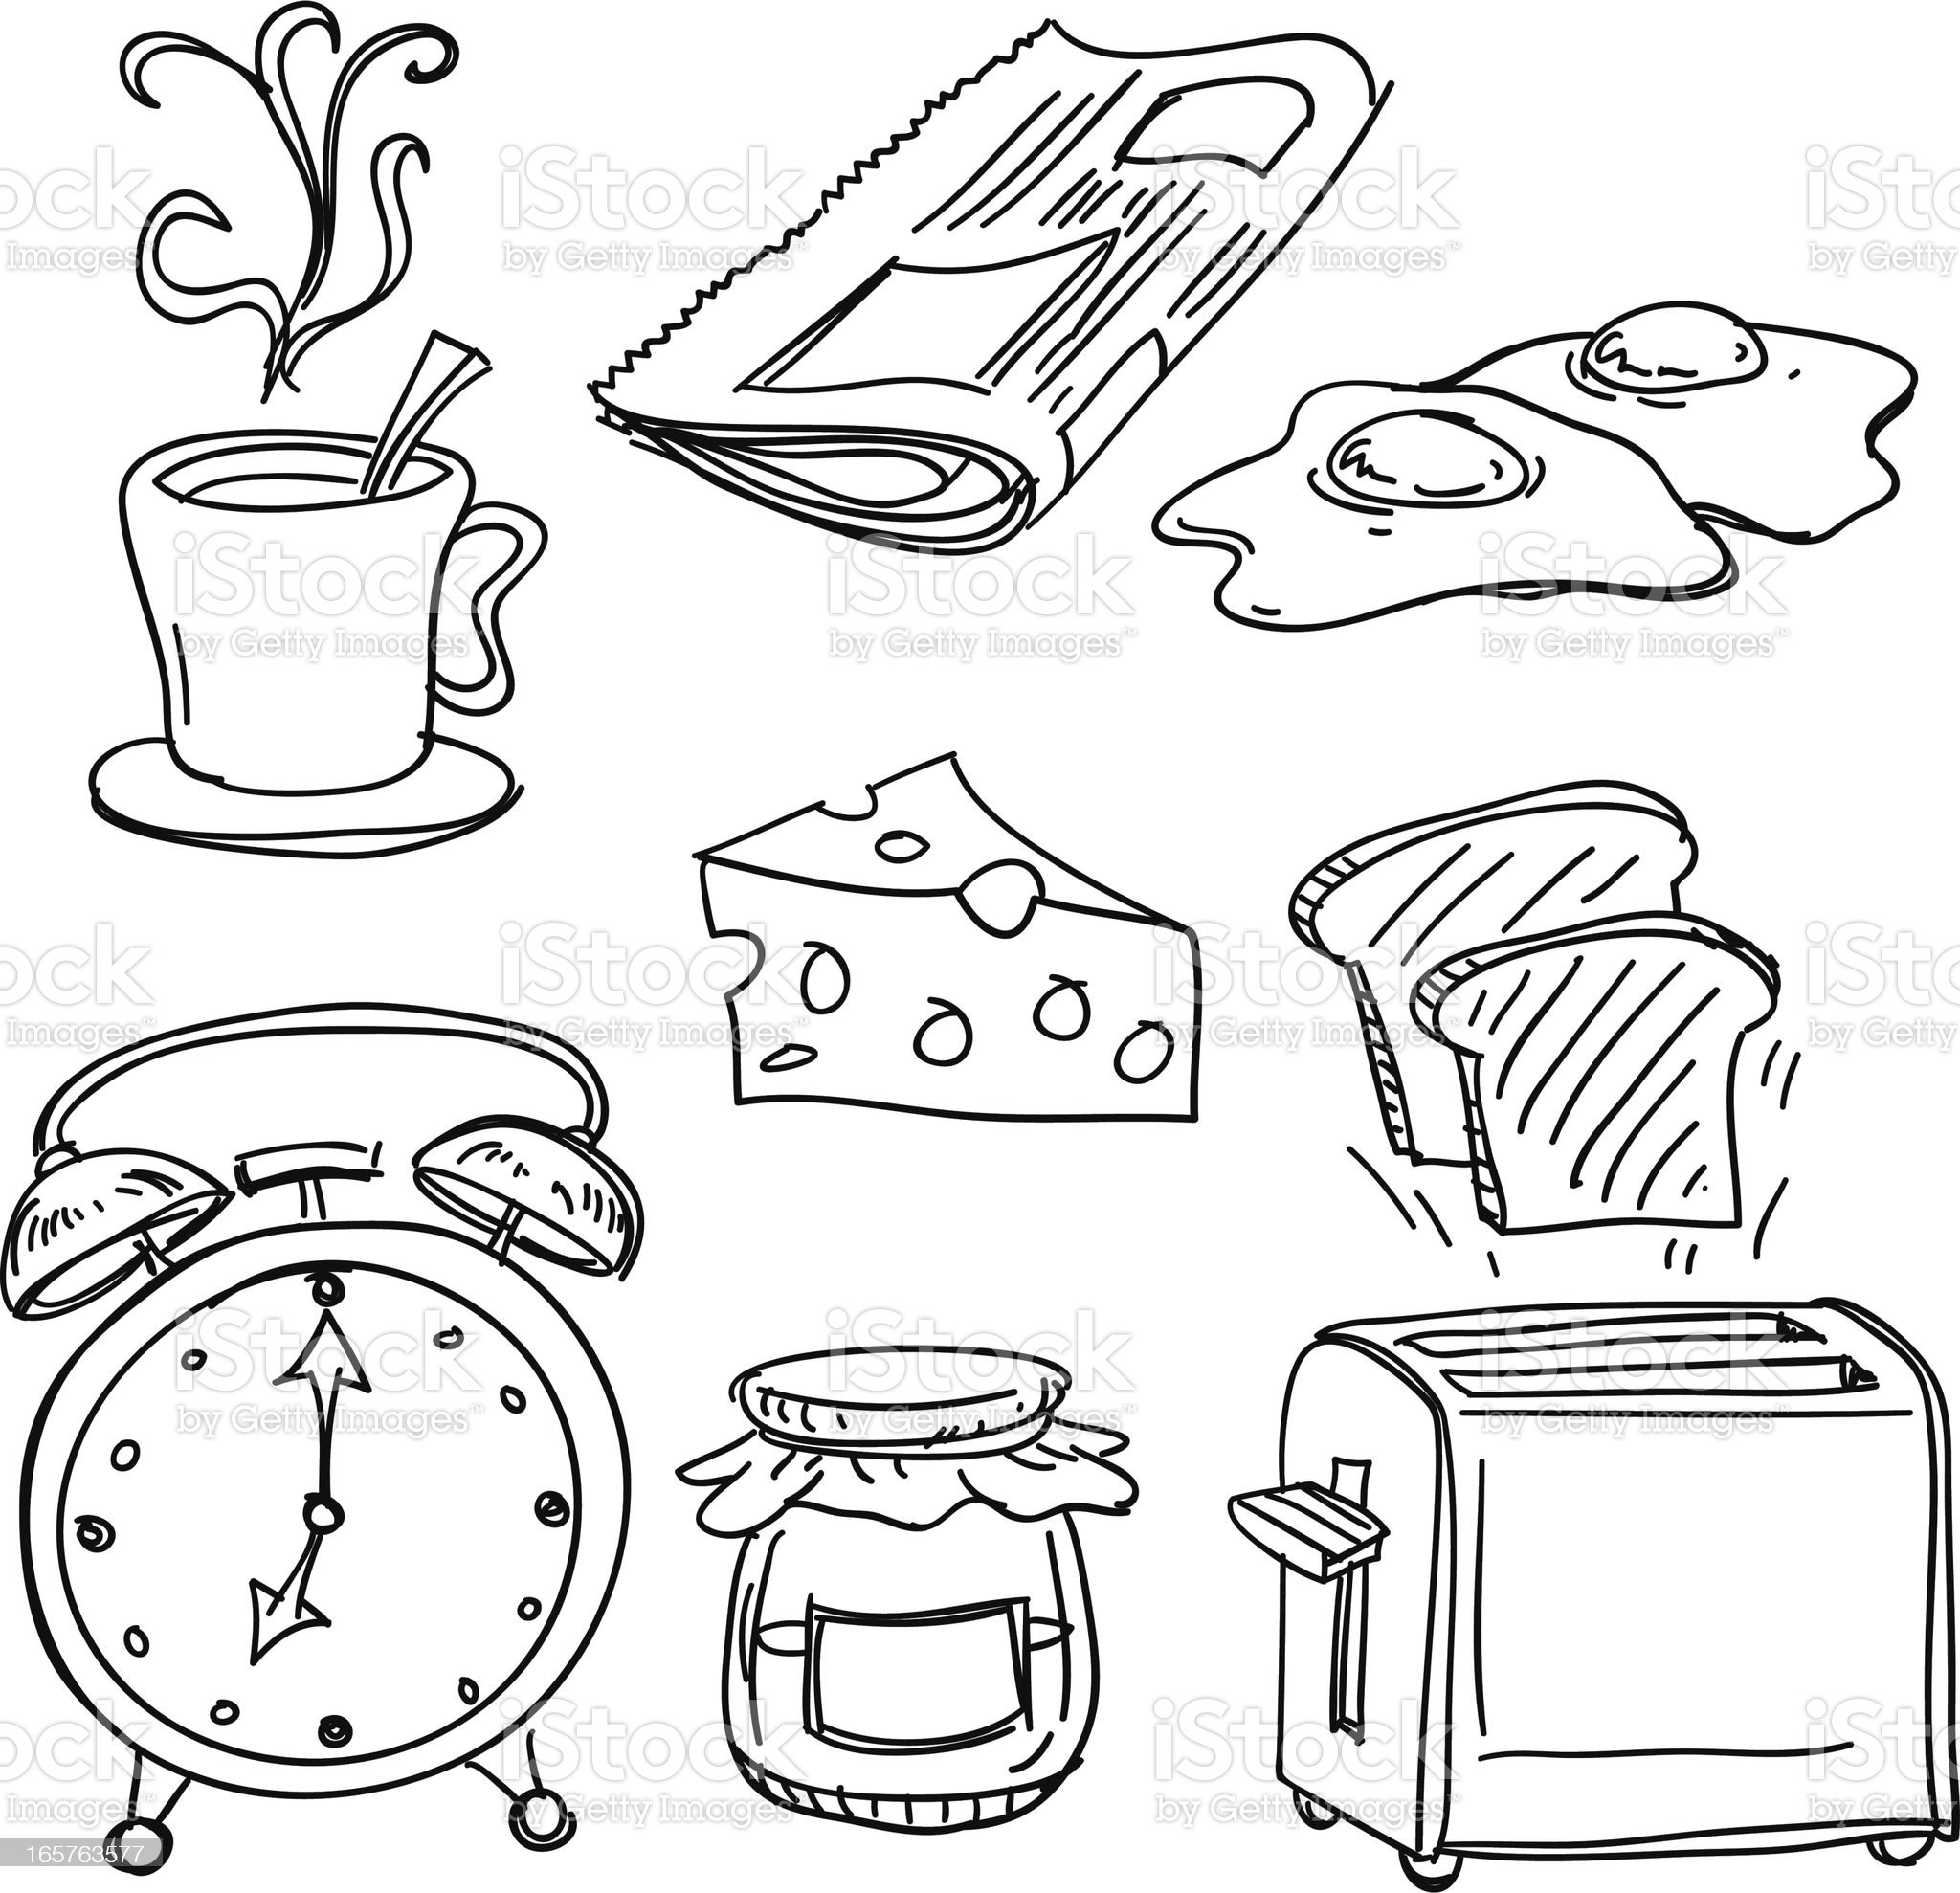 Breakfast collection in black and white royalty-free stock vector art